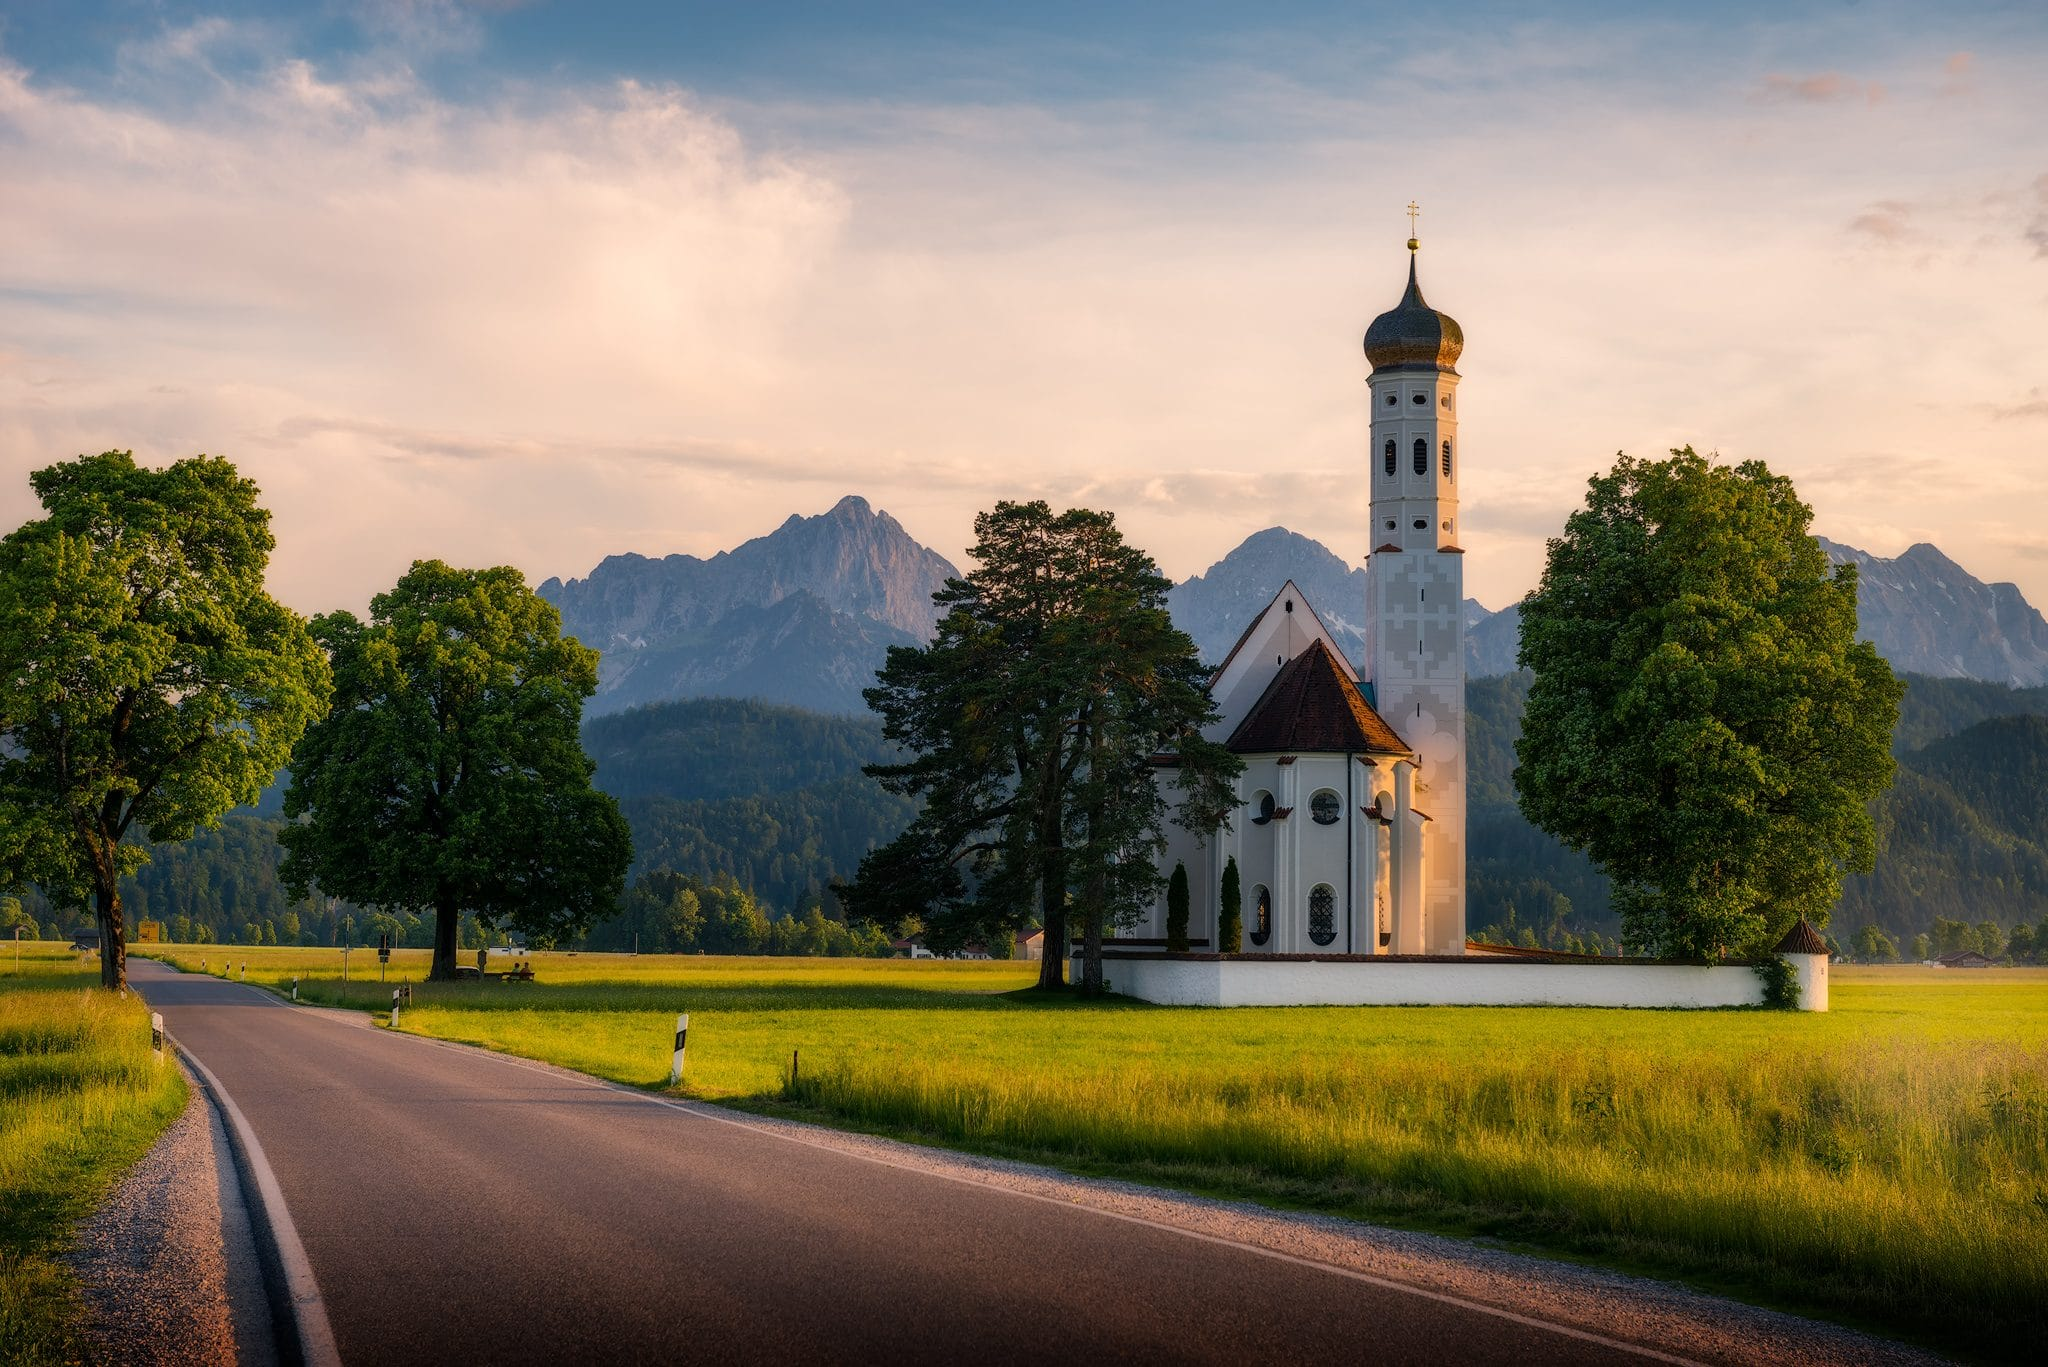 St. Coloman Church, Schwangau in Bavaria, Germany.